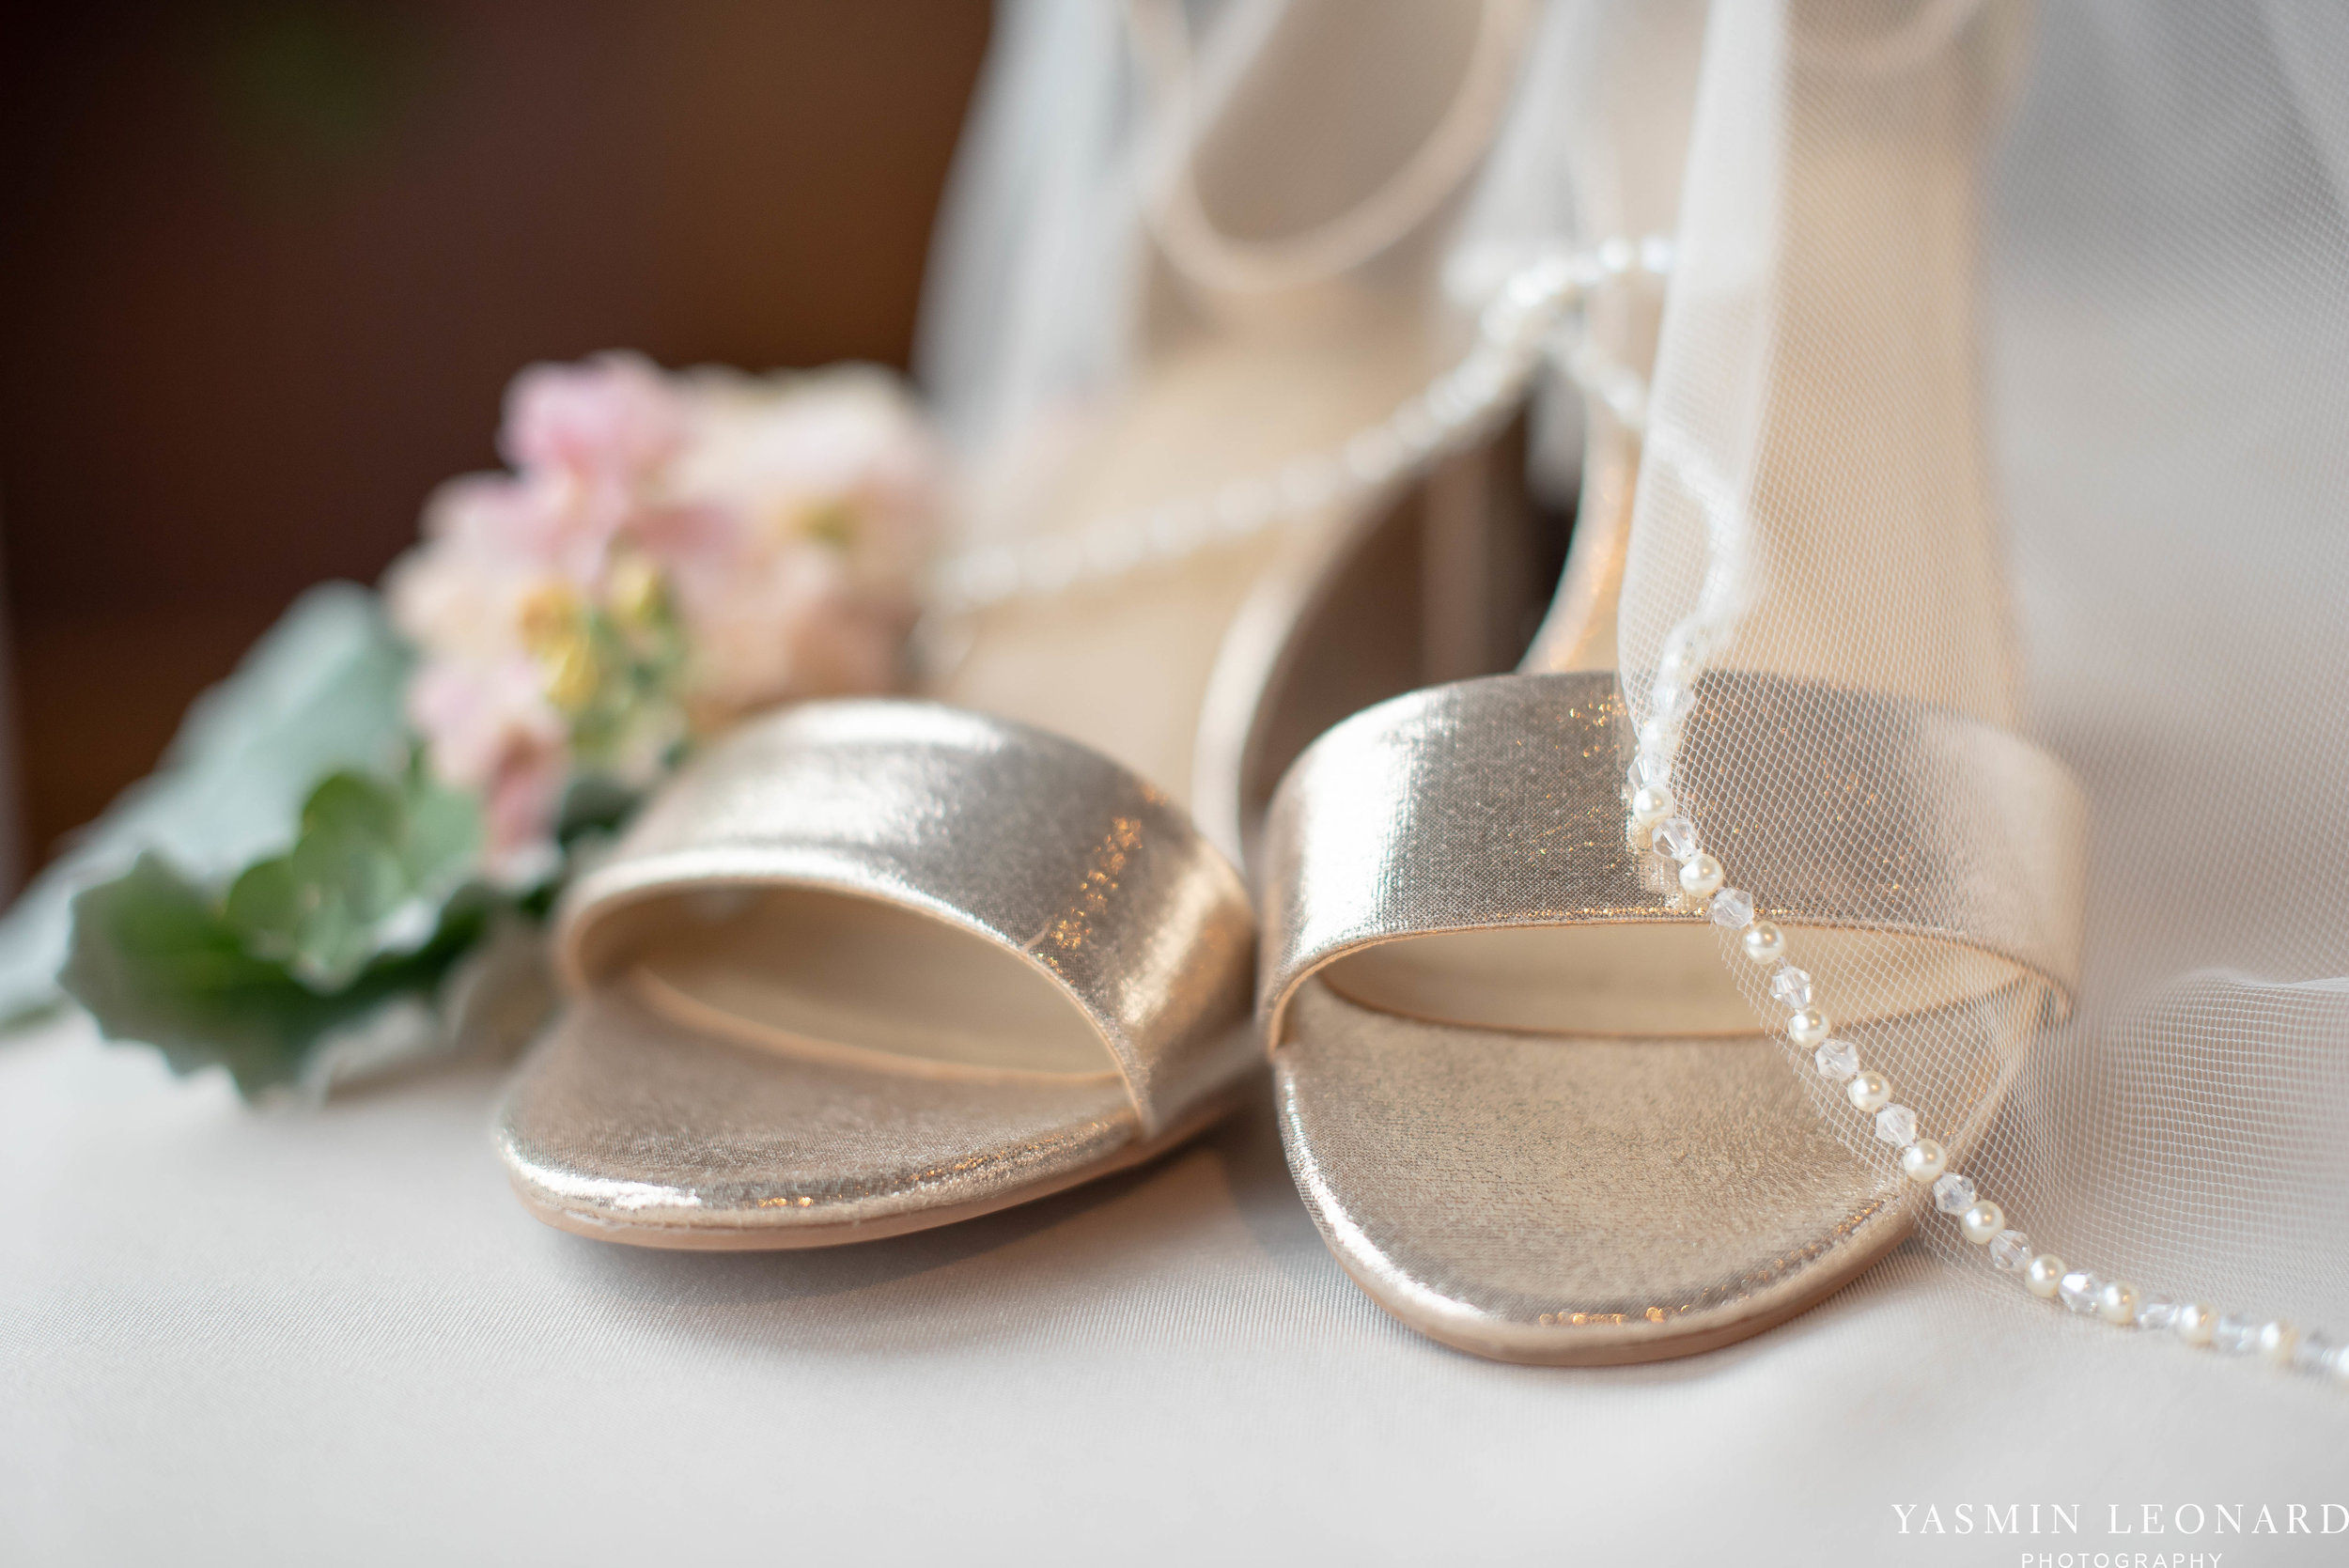 The Lofts at Union Square - Unions - High Point Weddings - NC Weddings - NC Wedding Photographer - Yasmin Leonard Photography - Just Priceless - Green Pink and Gold Wedding - Elegant Wedding-4.jpg